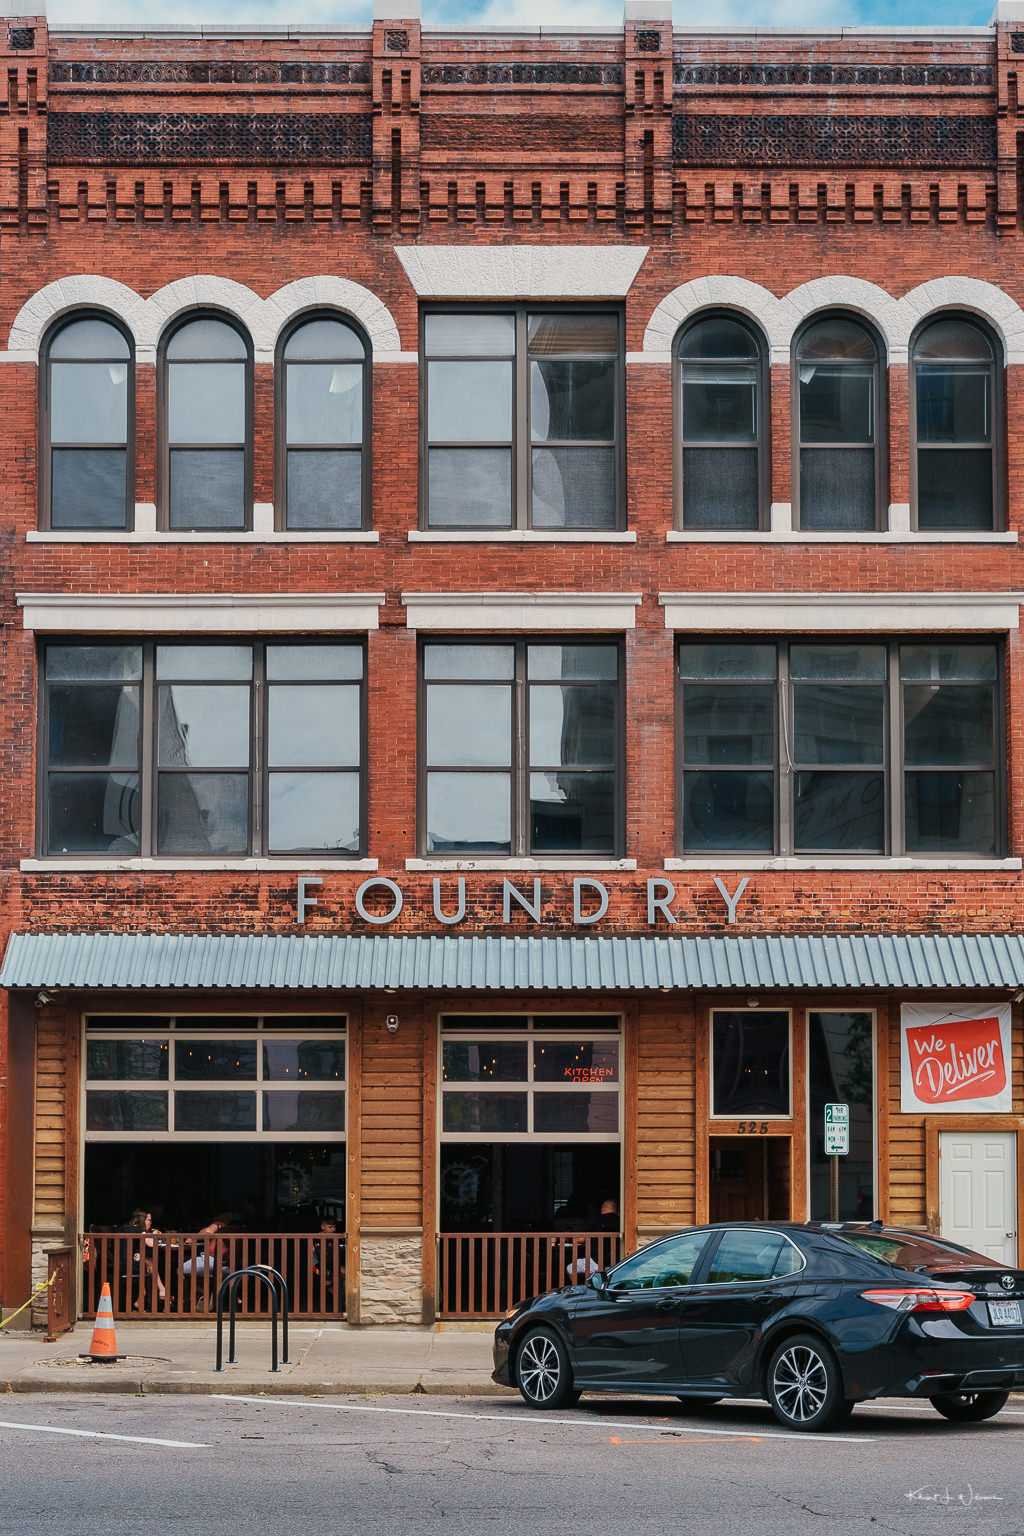 Foundry Kitchen and Bar